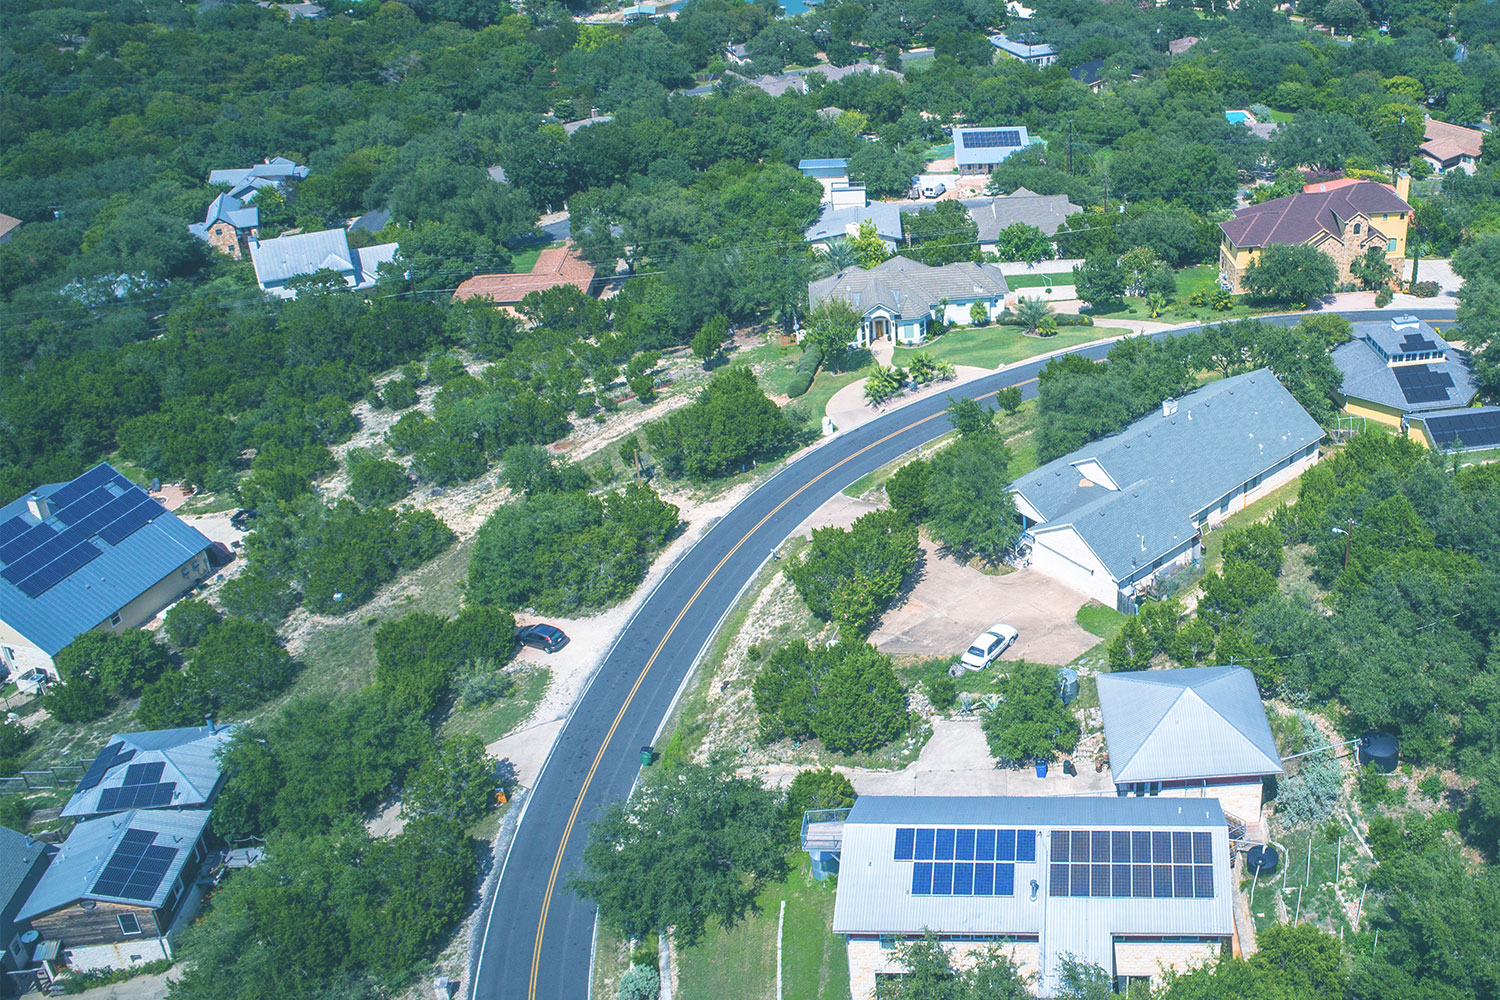 Aerial view of residential houses with solar panels